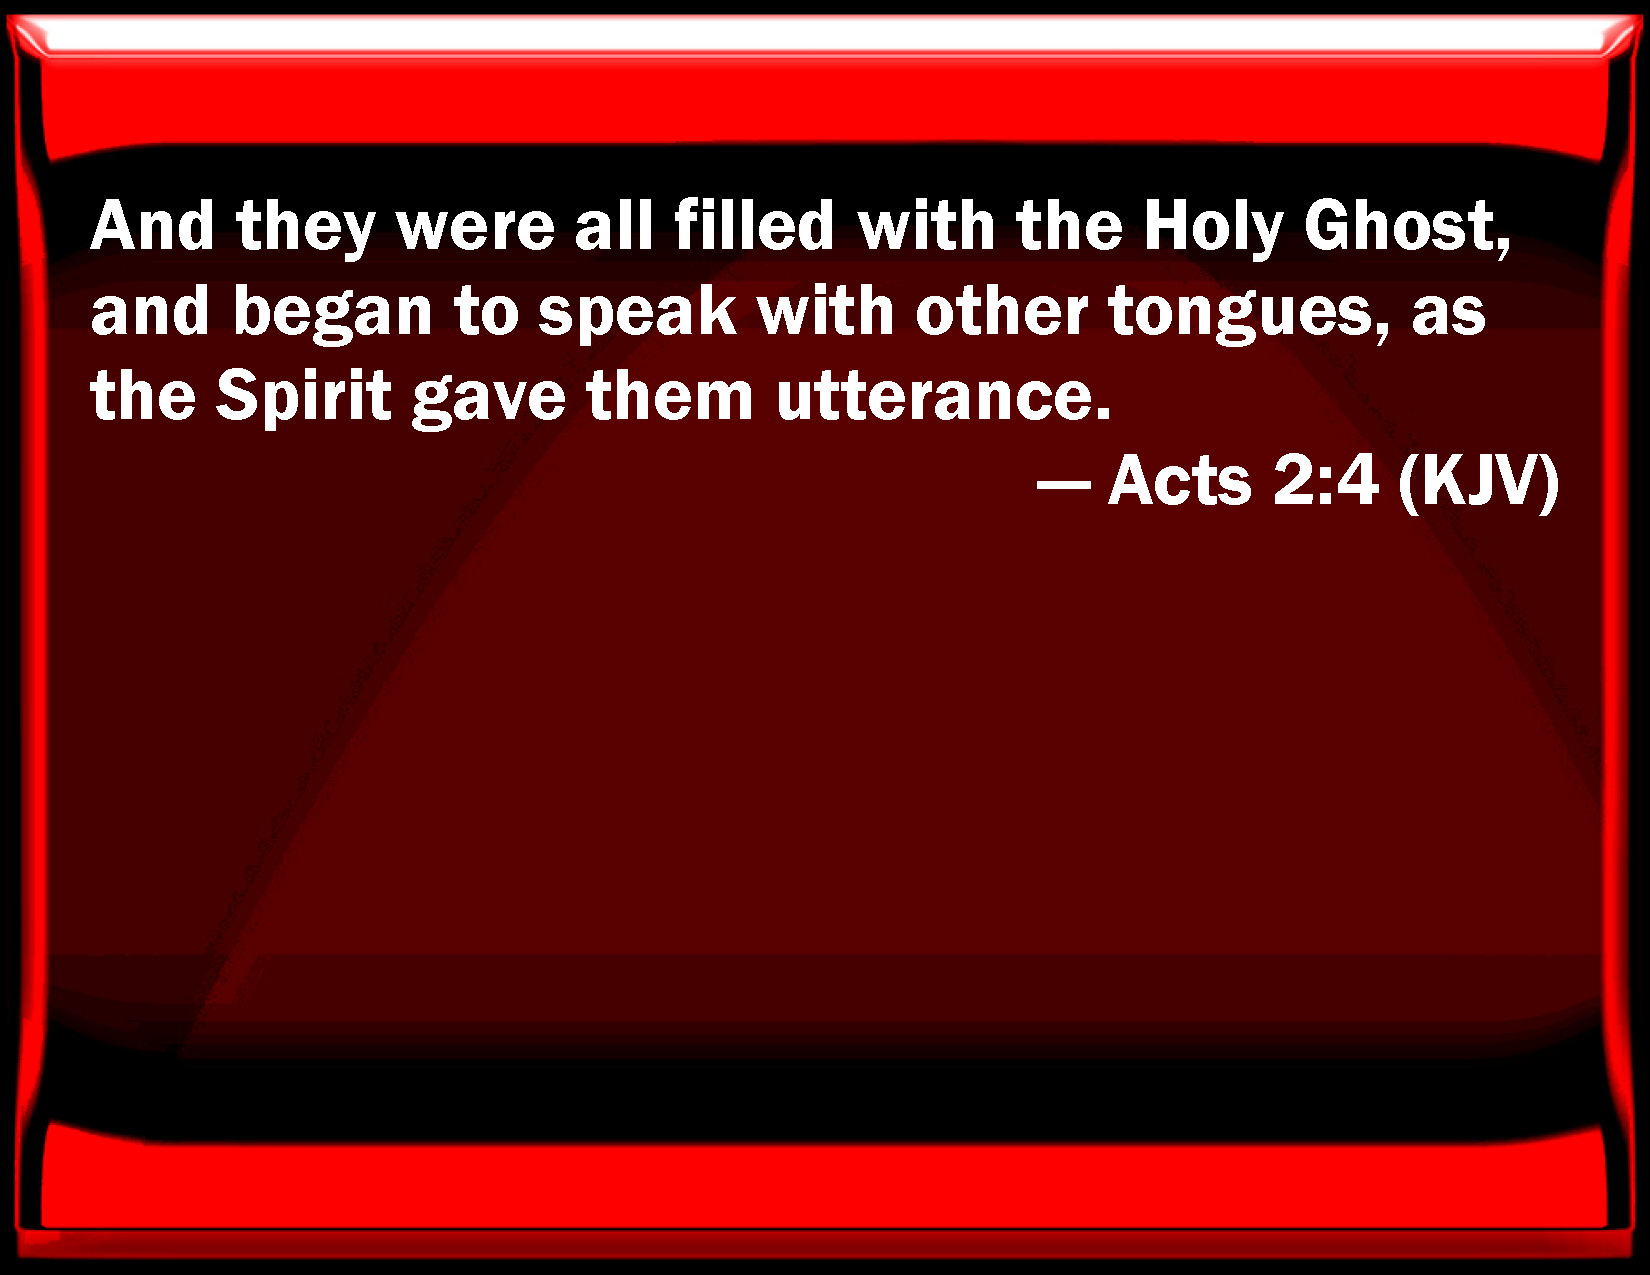 acts 2 4 and they were all filled with the holy ghost and began to